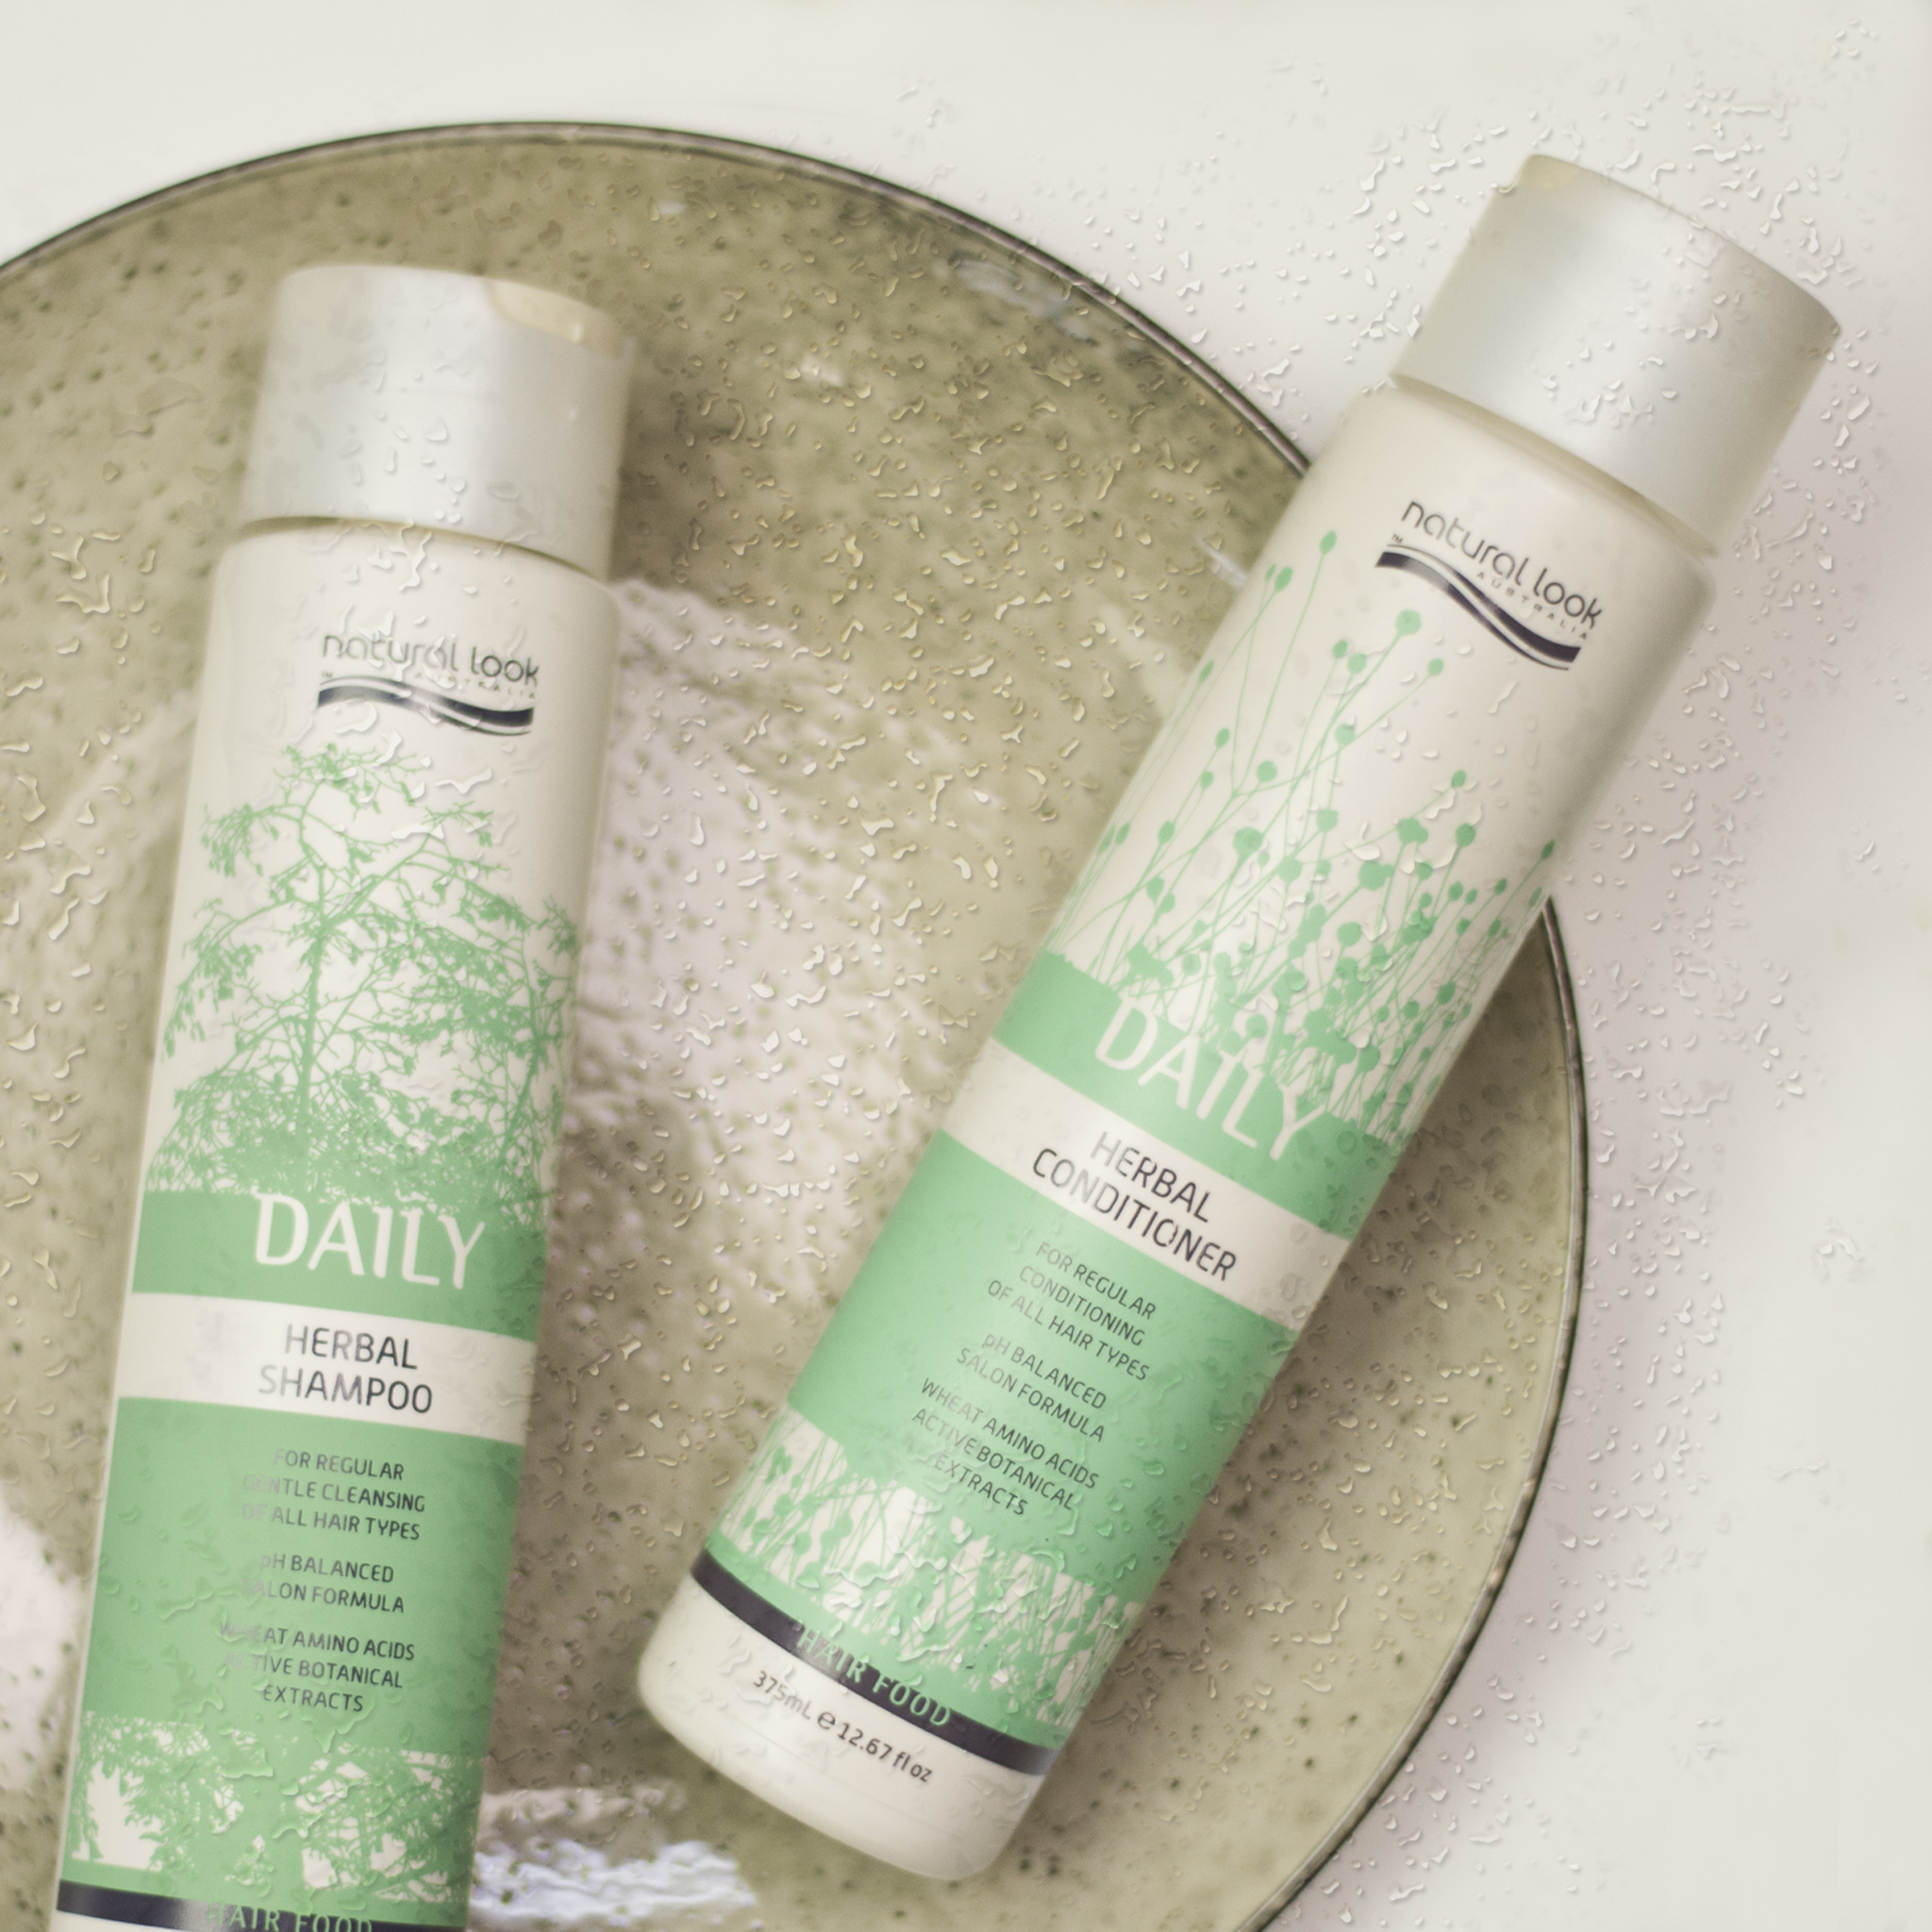 Daily Herbal Conditioner product image